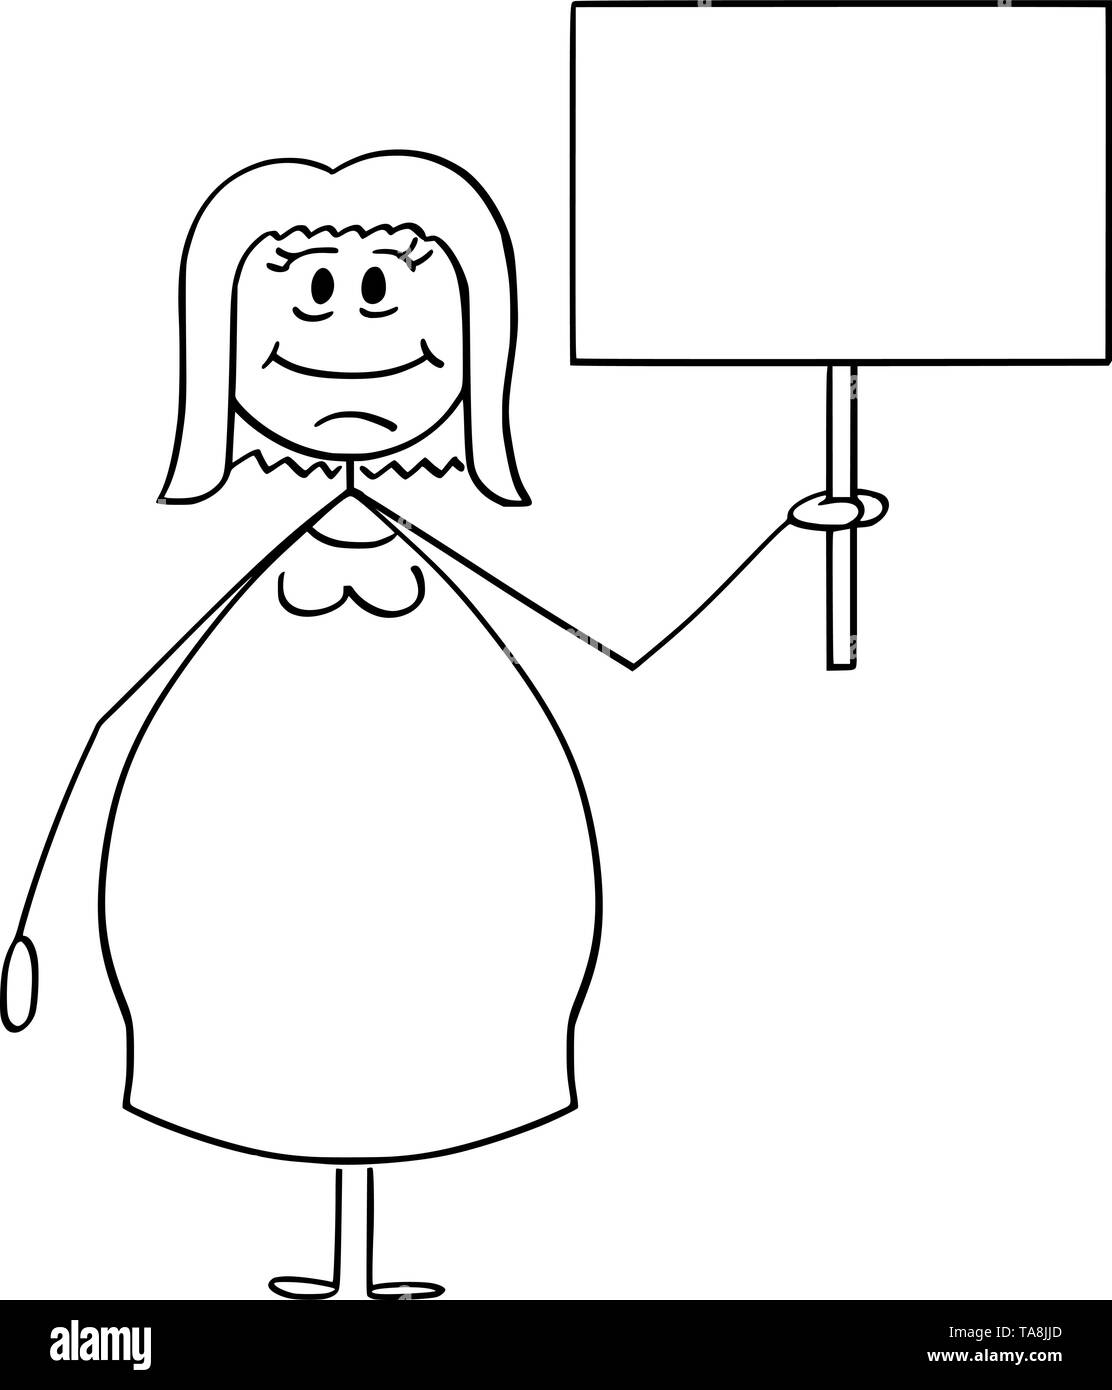 Vector cartoon stick figure drawing conceptual illustration of smiling overweight or obese woman holding empty sign ready for your text. - Stock Image